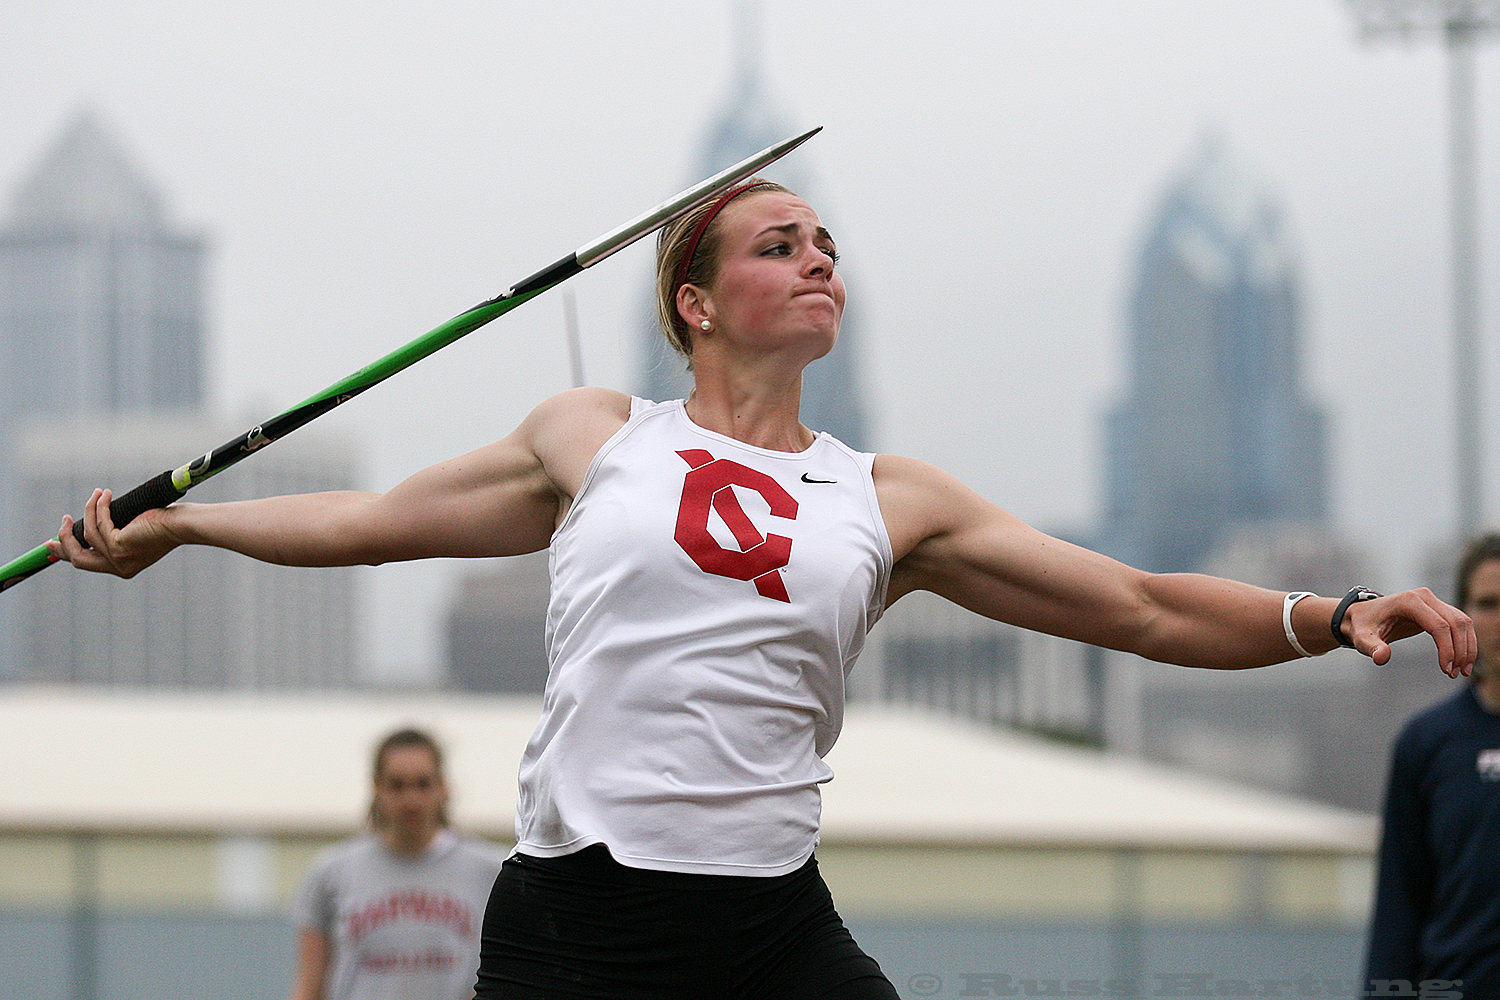 Victoria Imbesis competing in javelin at the 2012 Heptagonal Championships at Penn.